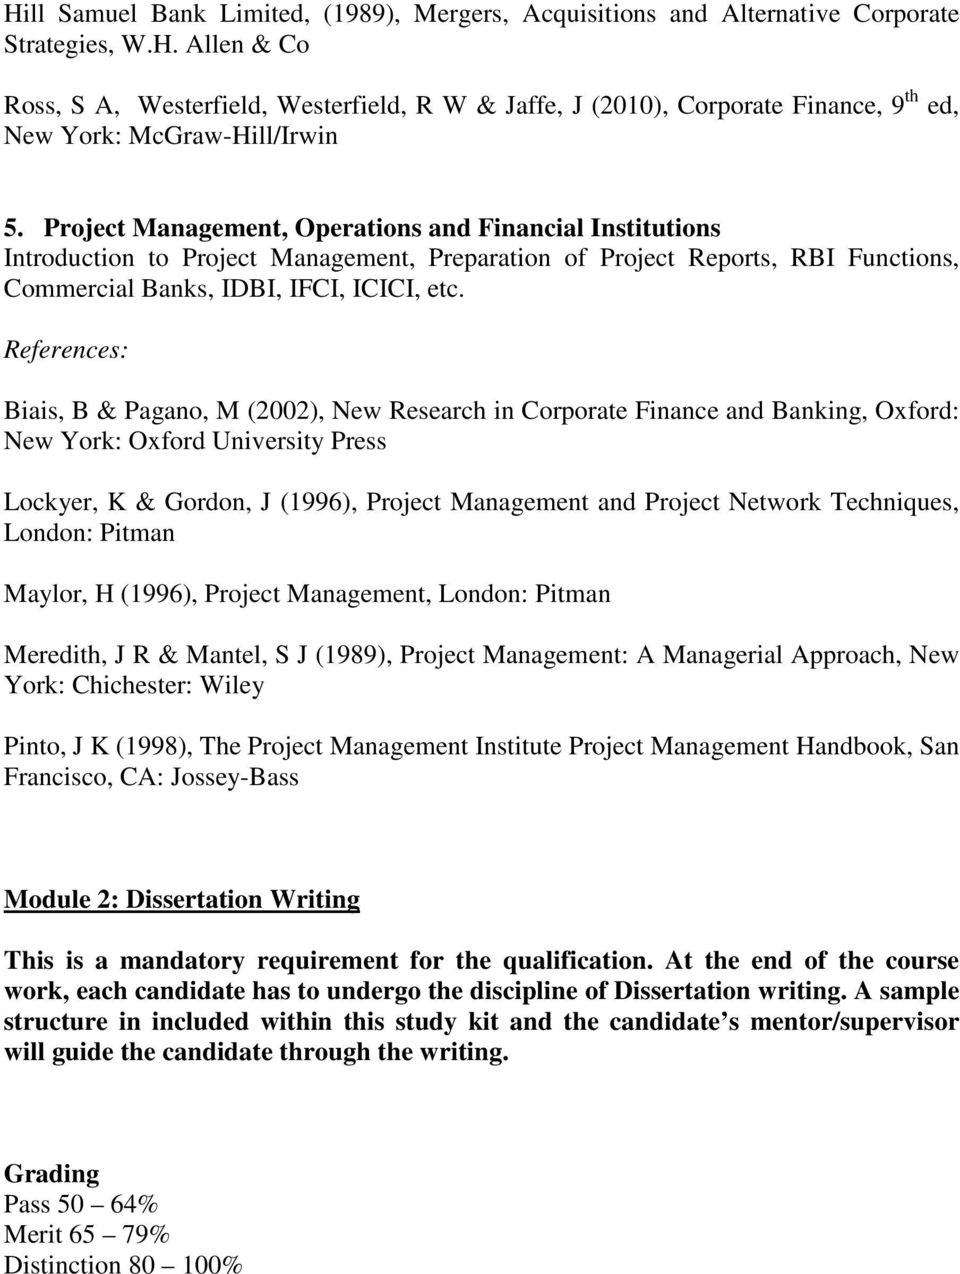 Biais, B & Pagano, M (2002), New Research in Corporate Finance and Banking, Oxford: New York: Oxford University Press Lockyer, K & Gordon, J (1996), Project Management and Project Network Techniques,